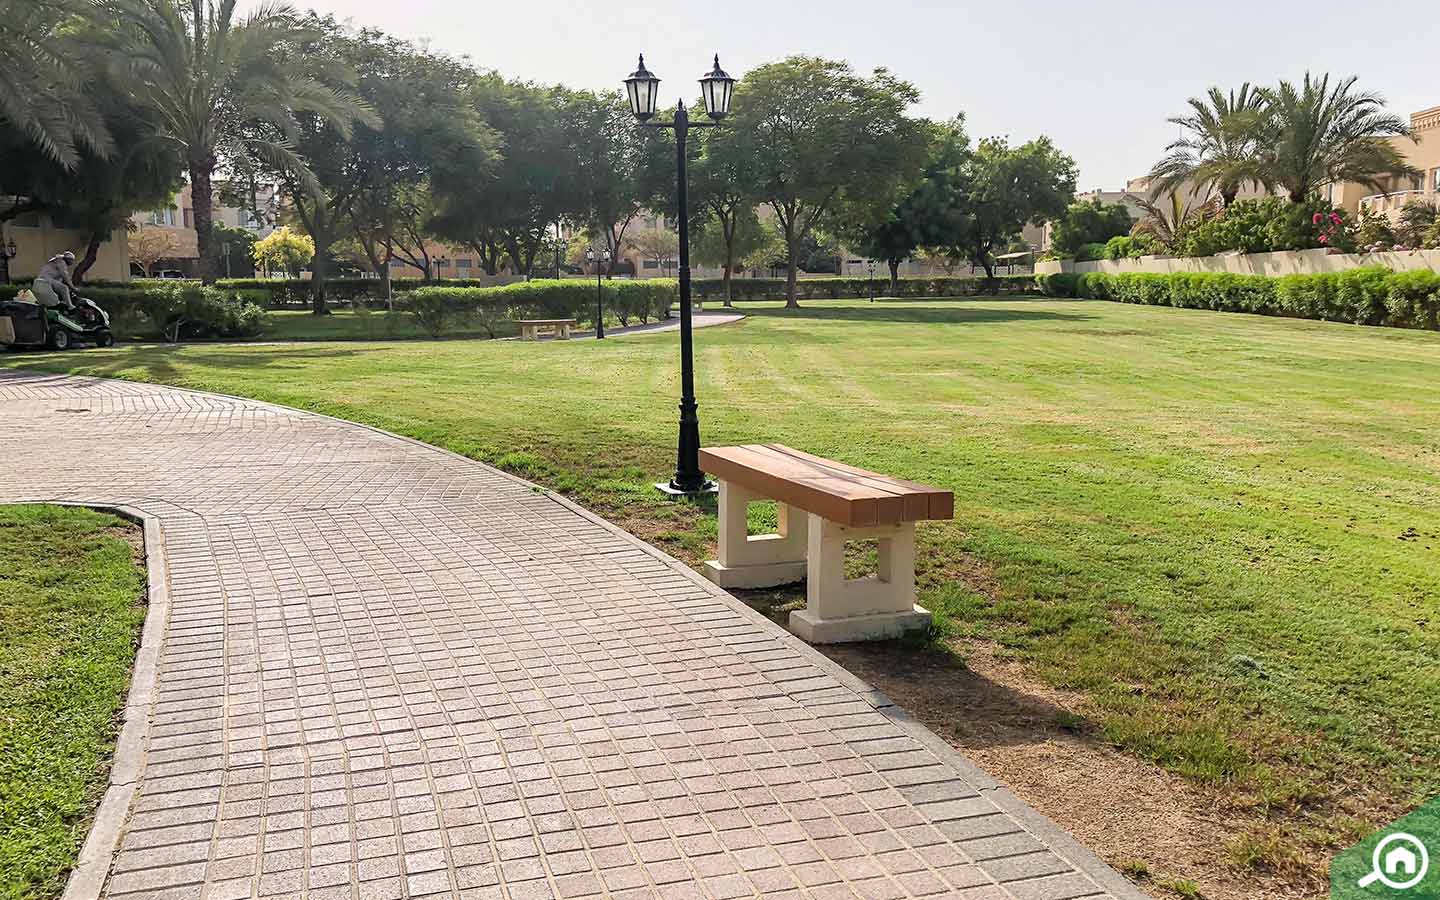 parks in Meadows Dubai